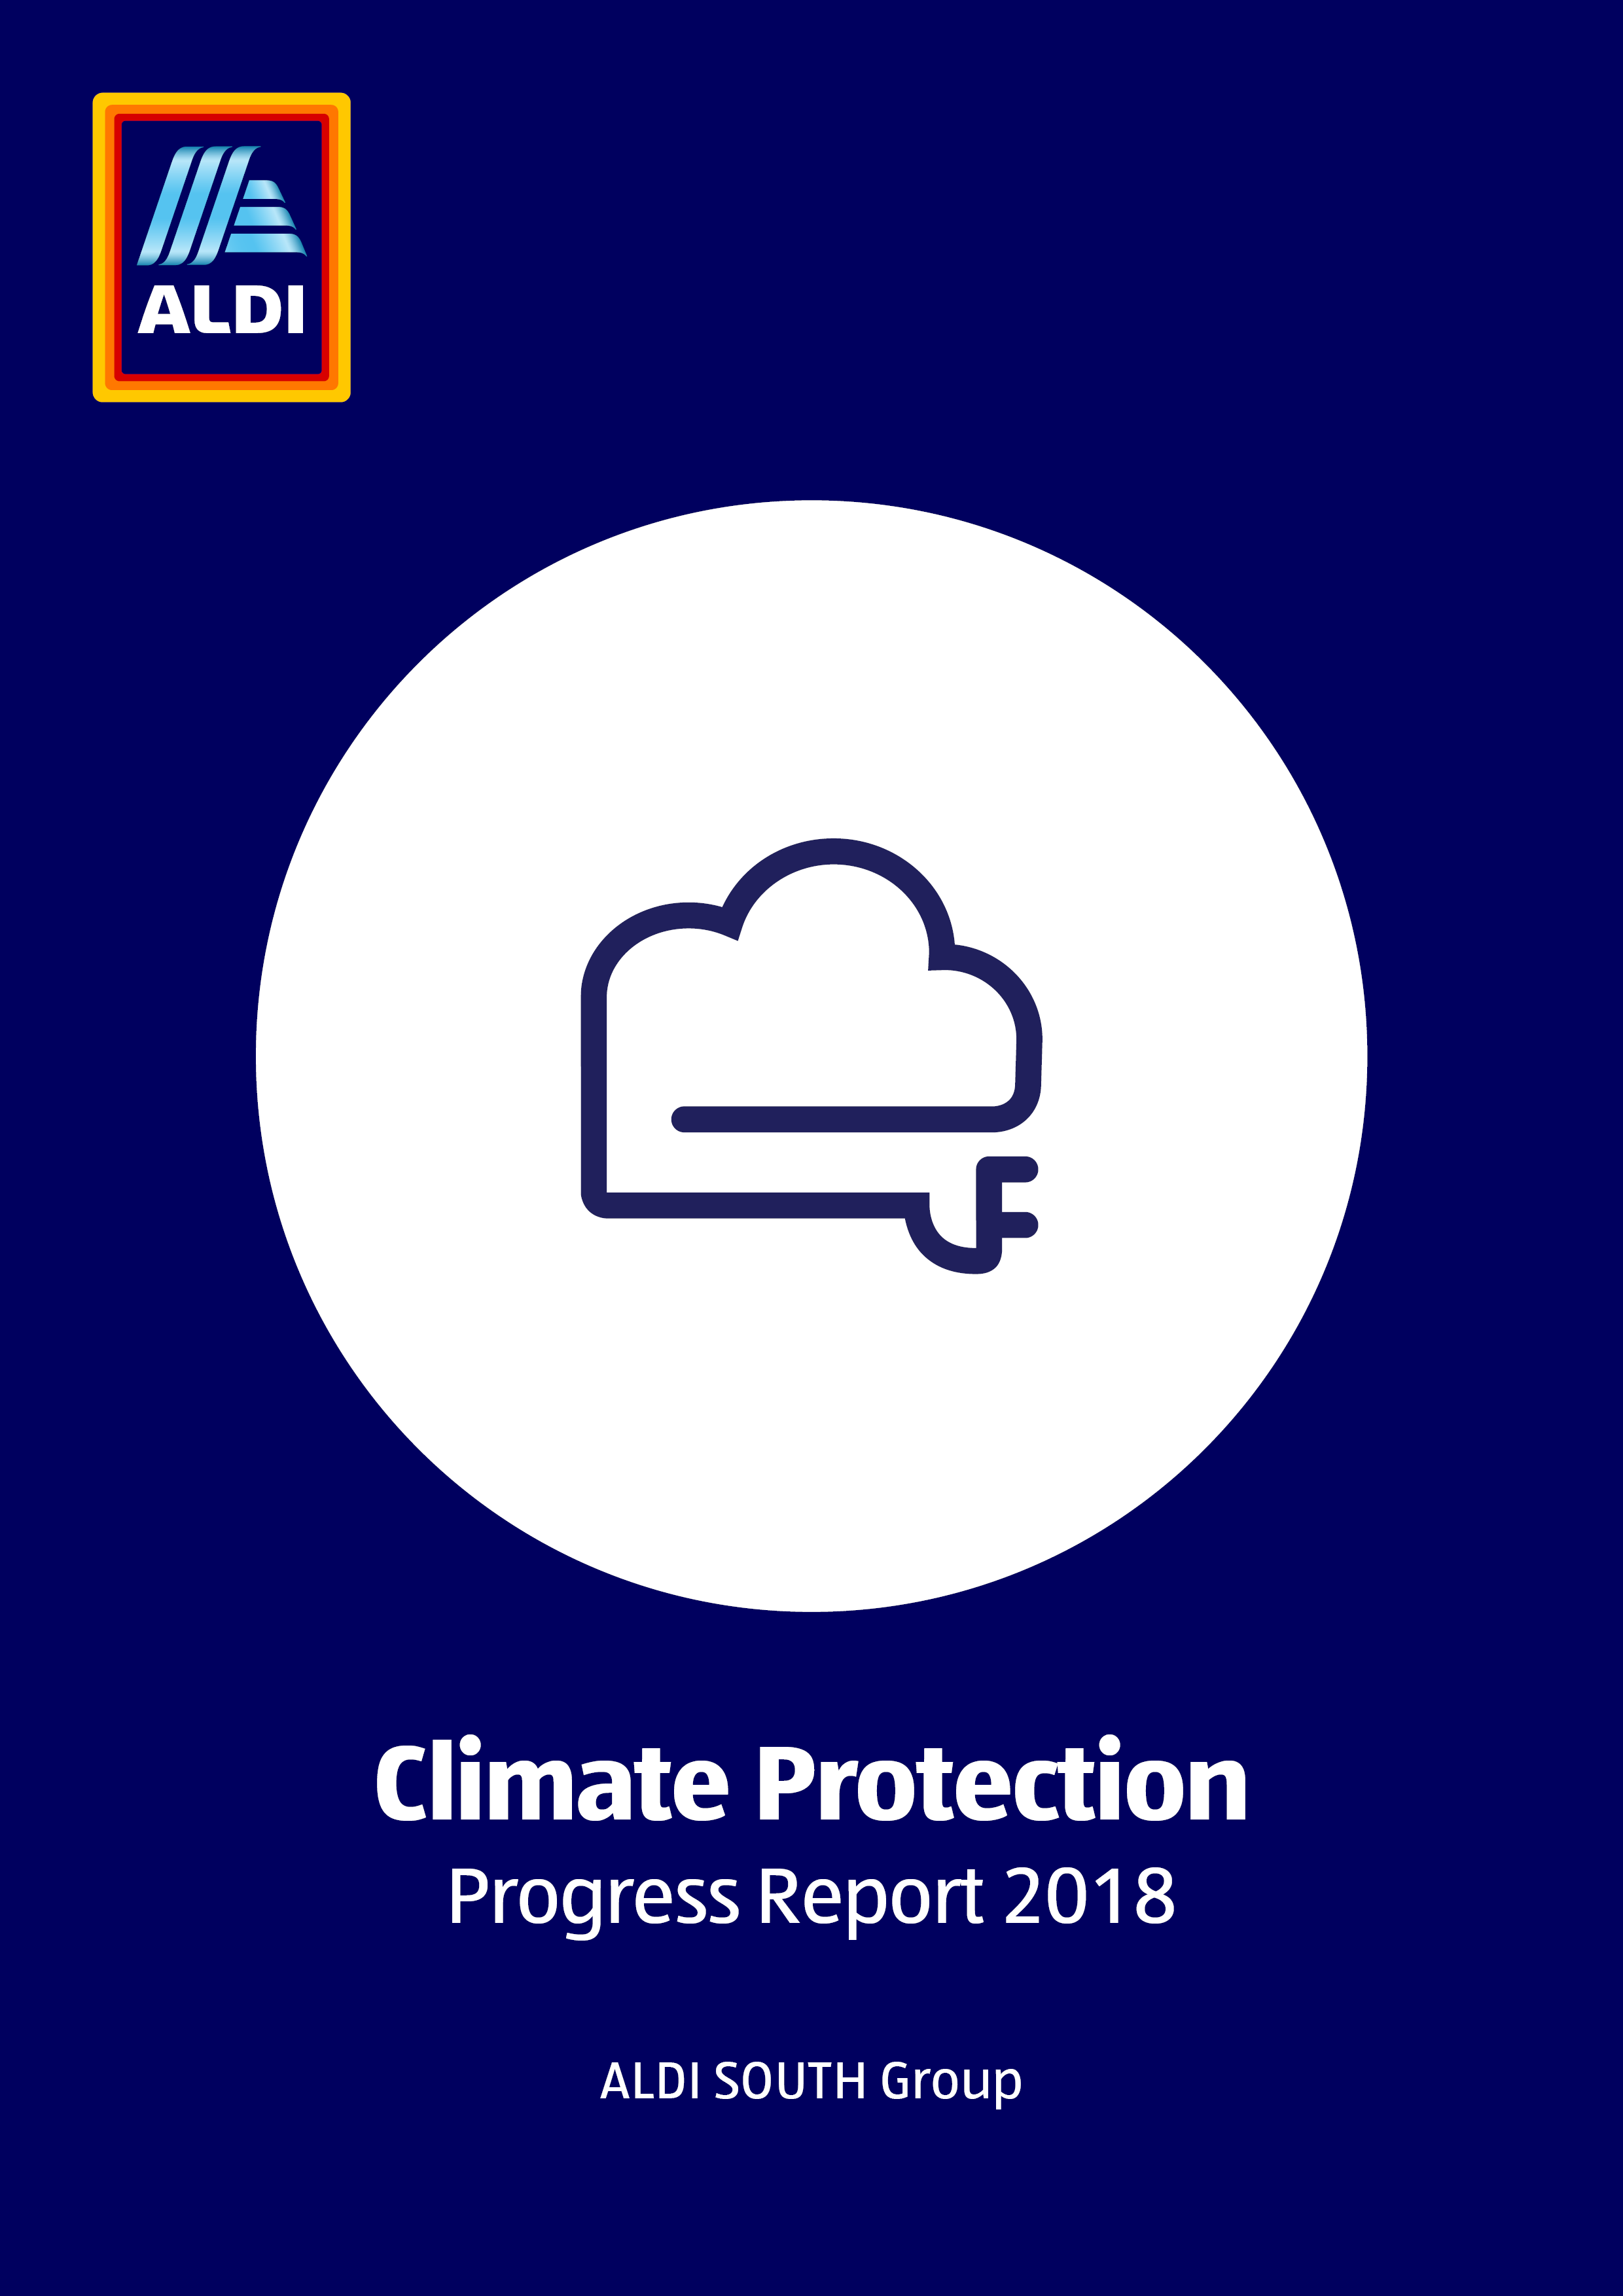 Climate Protection Progress Report 2018